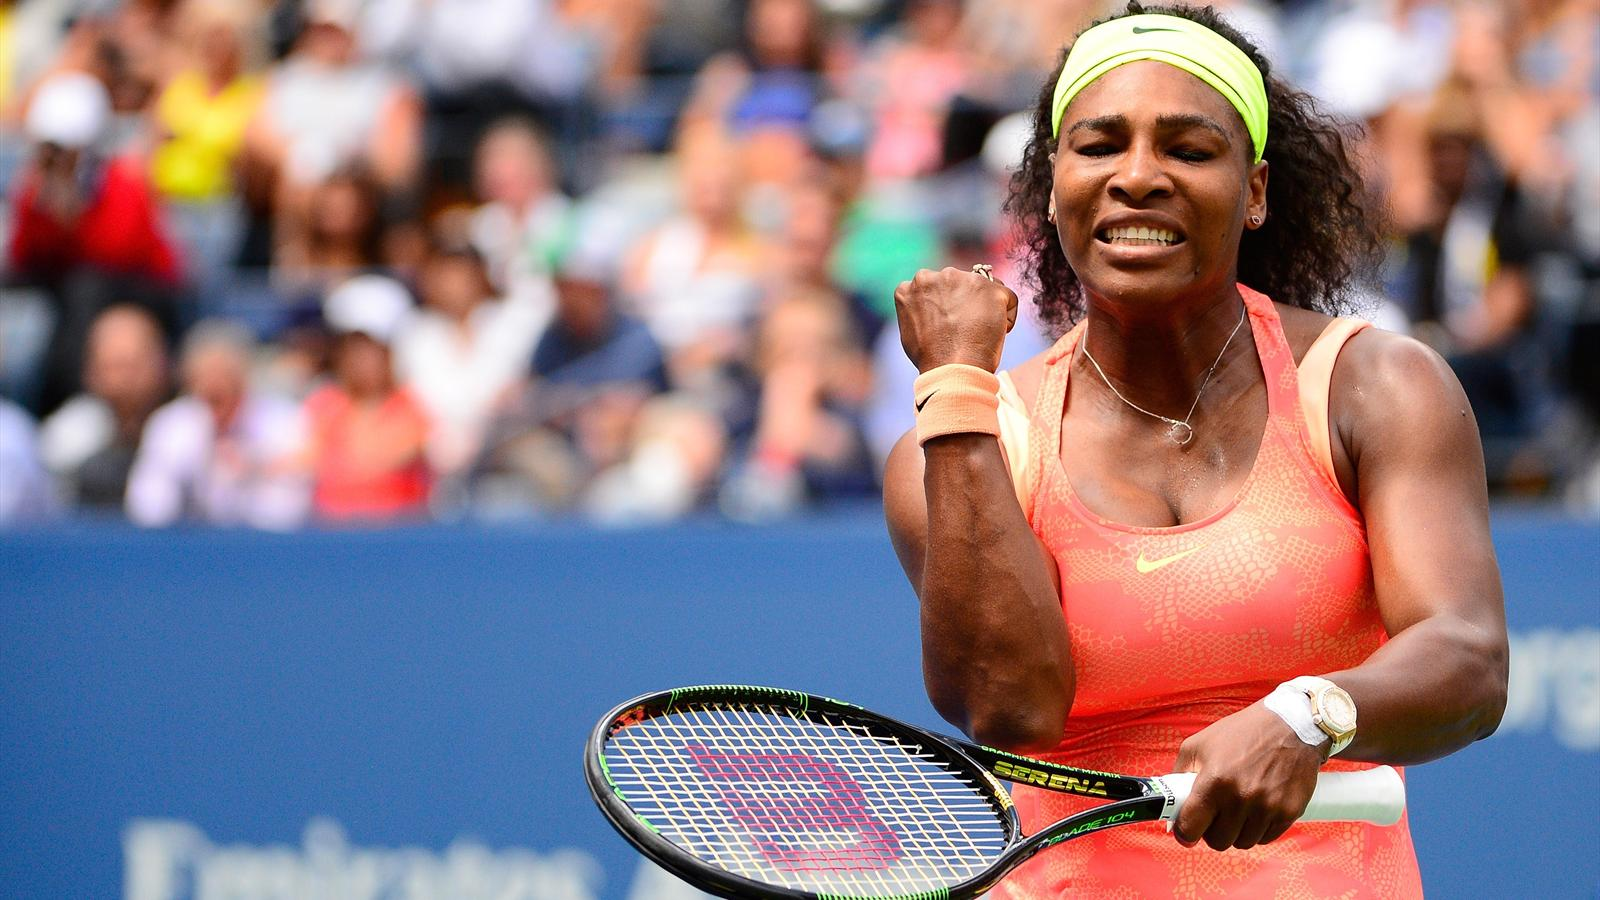 War 2015 schon nah dran am Grand Slam: Serena Williams